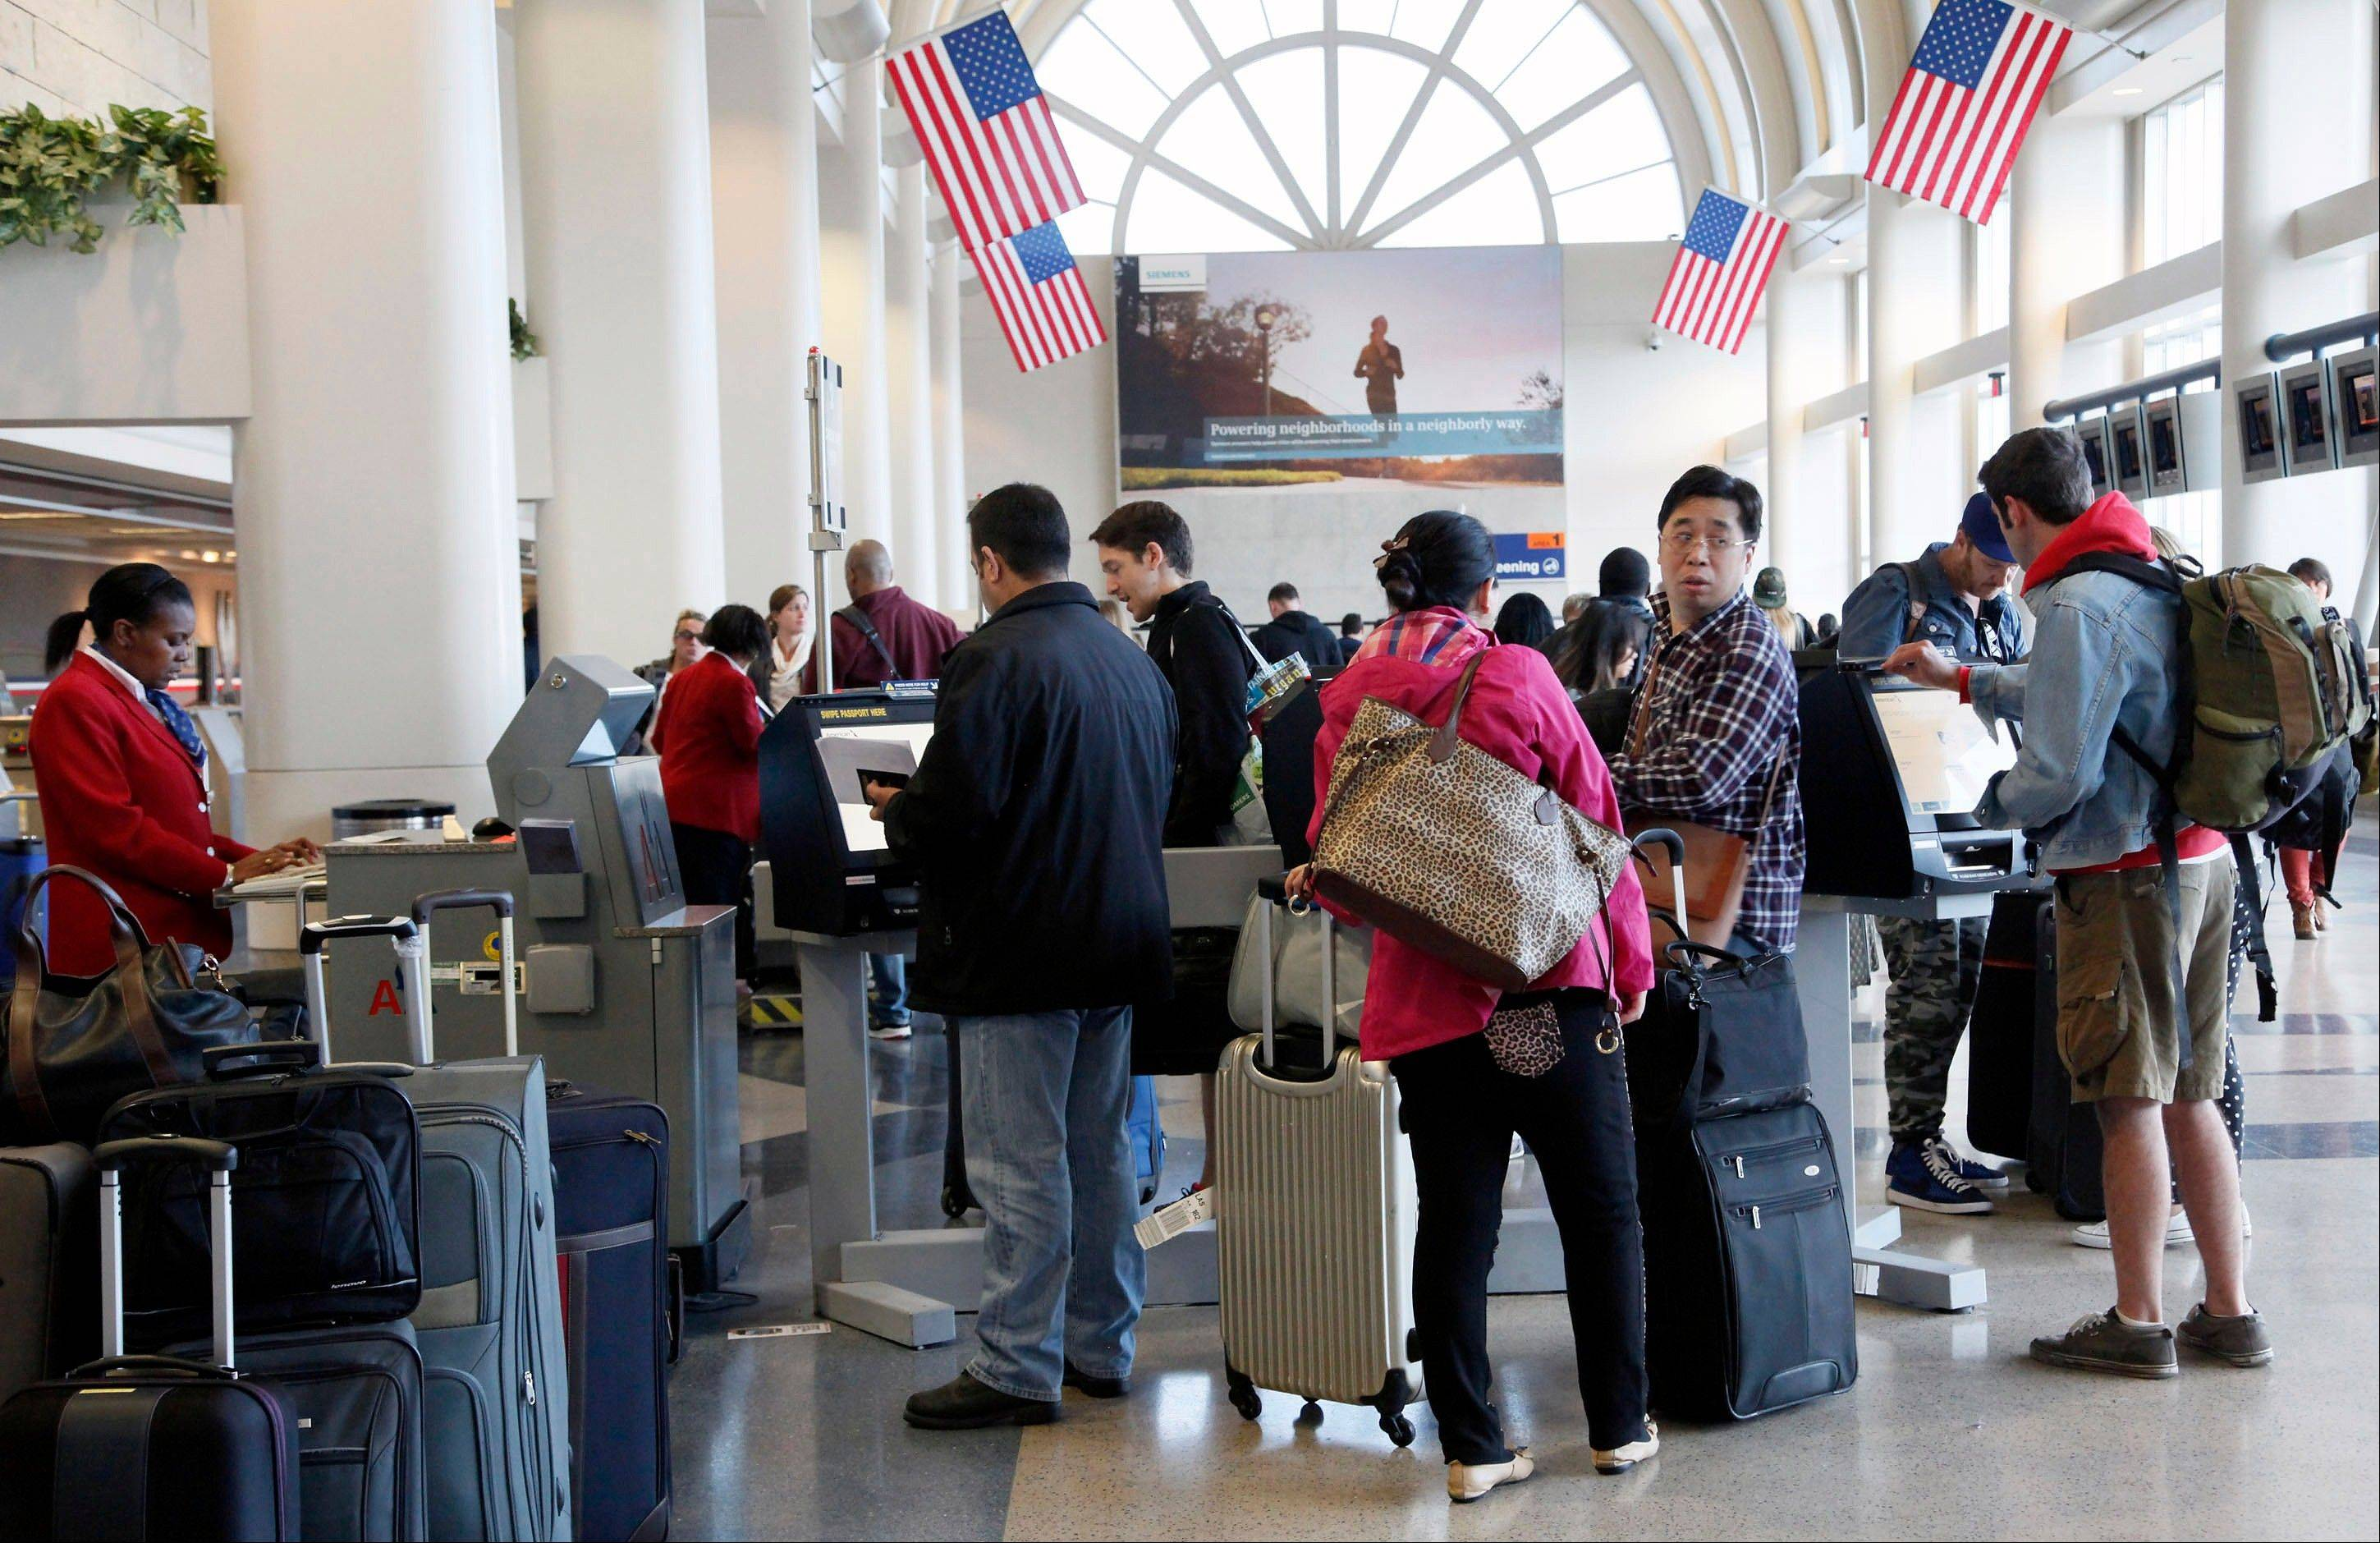 Passengers at the American Airlines counter wait Tuesday to check in to their flights at Los Angeles International Airport. Computer problems forced American Airlines to ground flights across the country Tuesday after the airline was unable to check passengers in and book passengers.